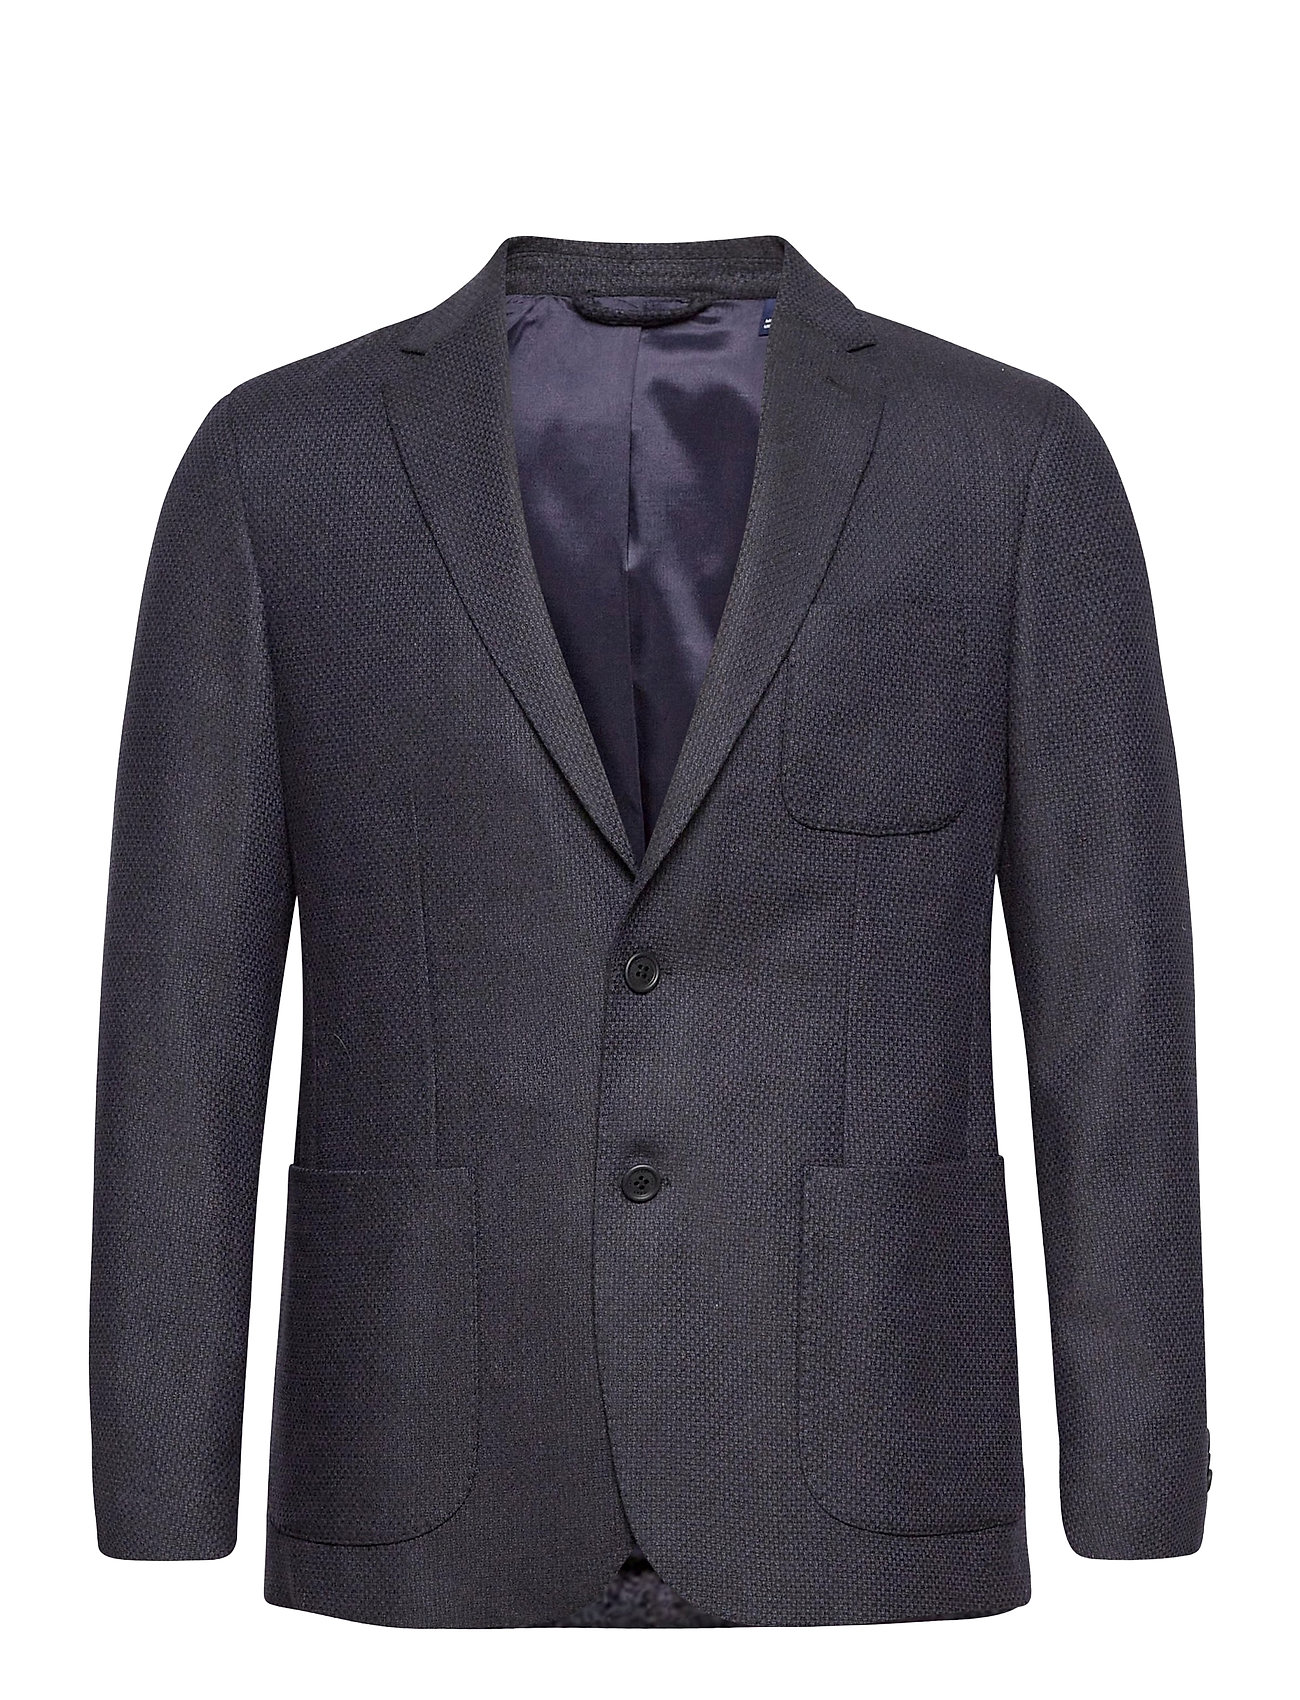 Image of D1. Slim Structured Flannel Blazer Blazer Jakke Blå GANT (3489428691)